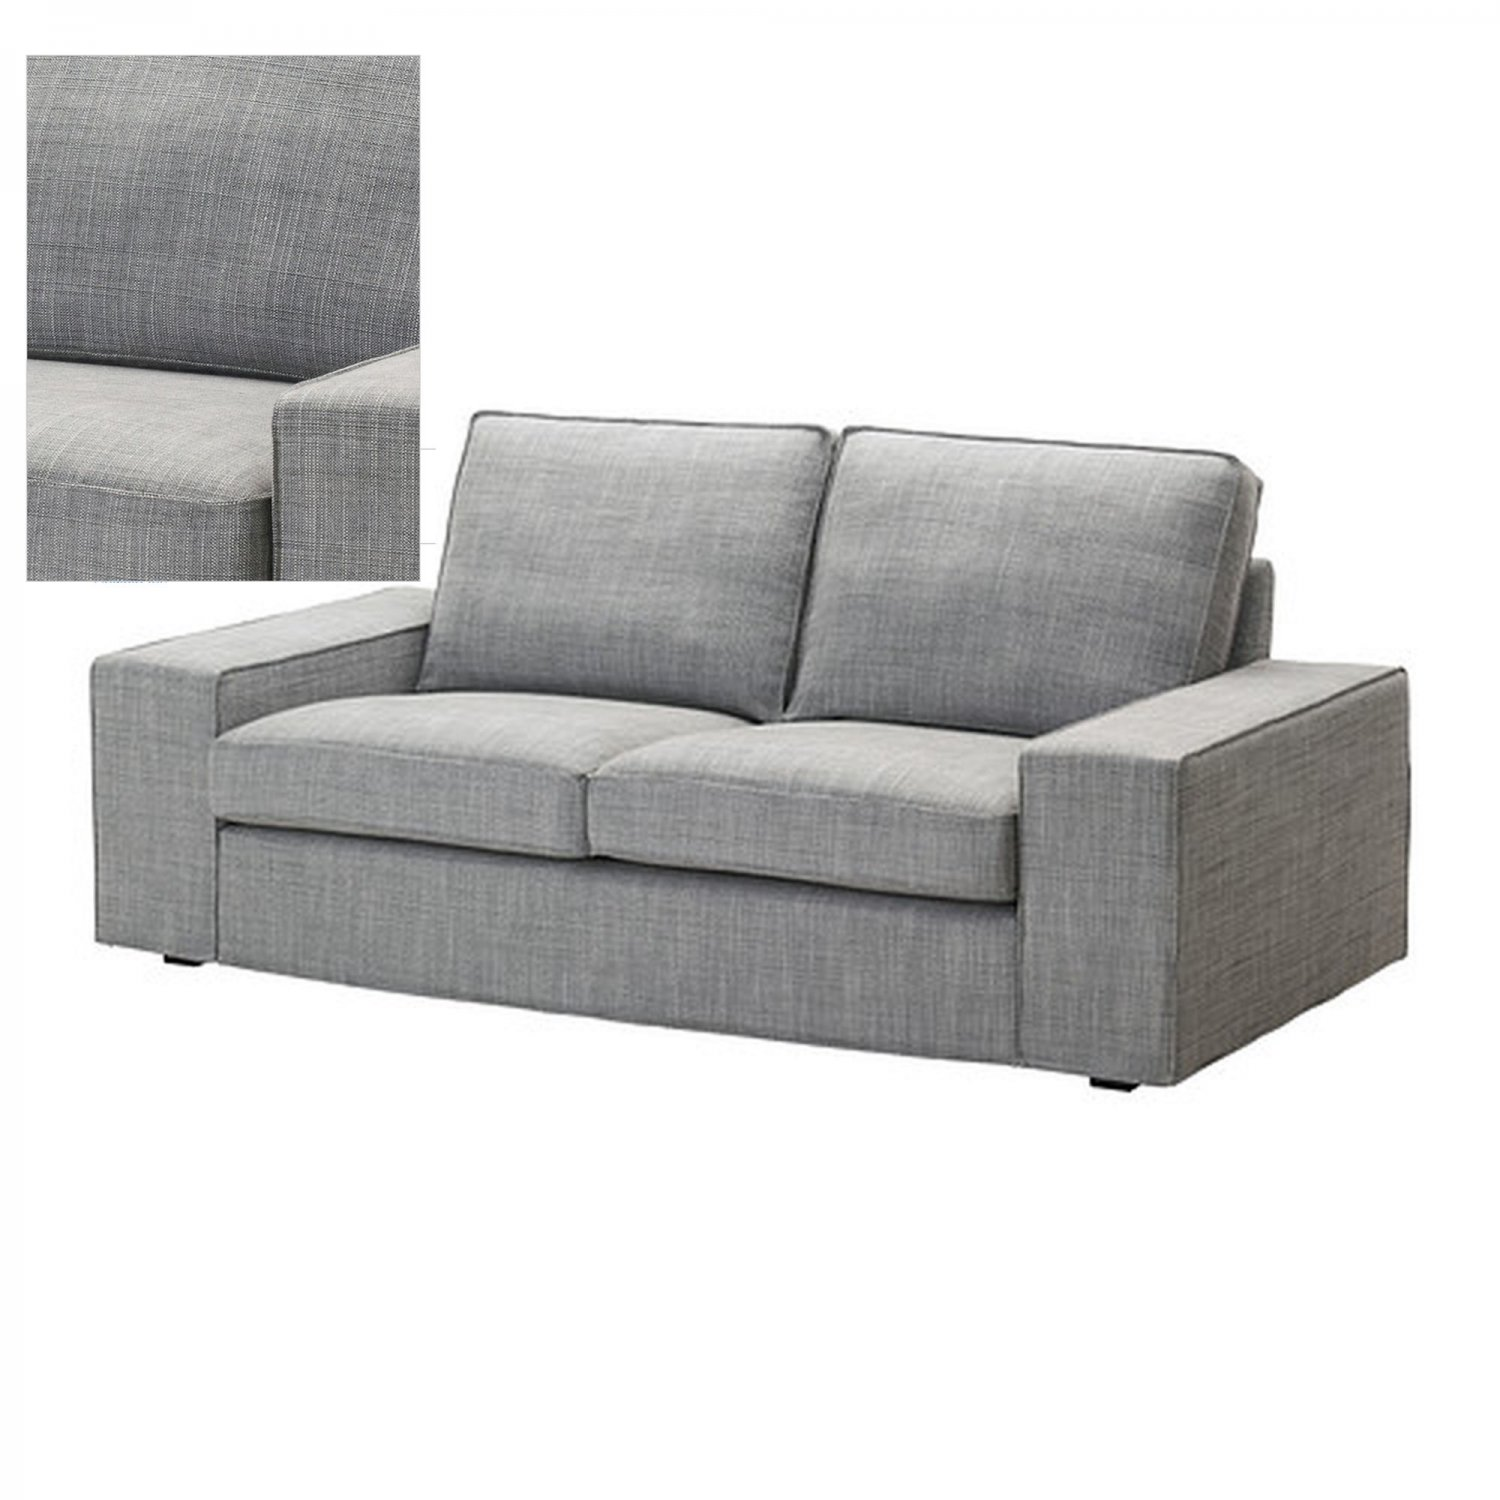 Ikea kivik 2 seat loveseat sofa slipcover cover isunda for Housse sofa ikea